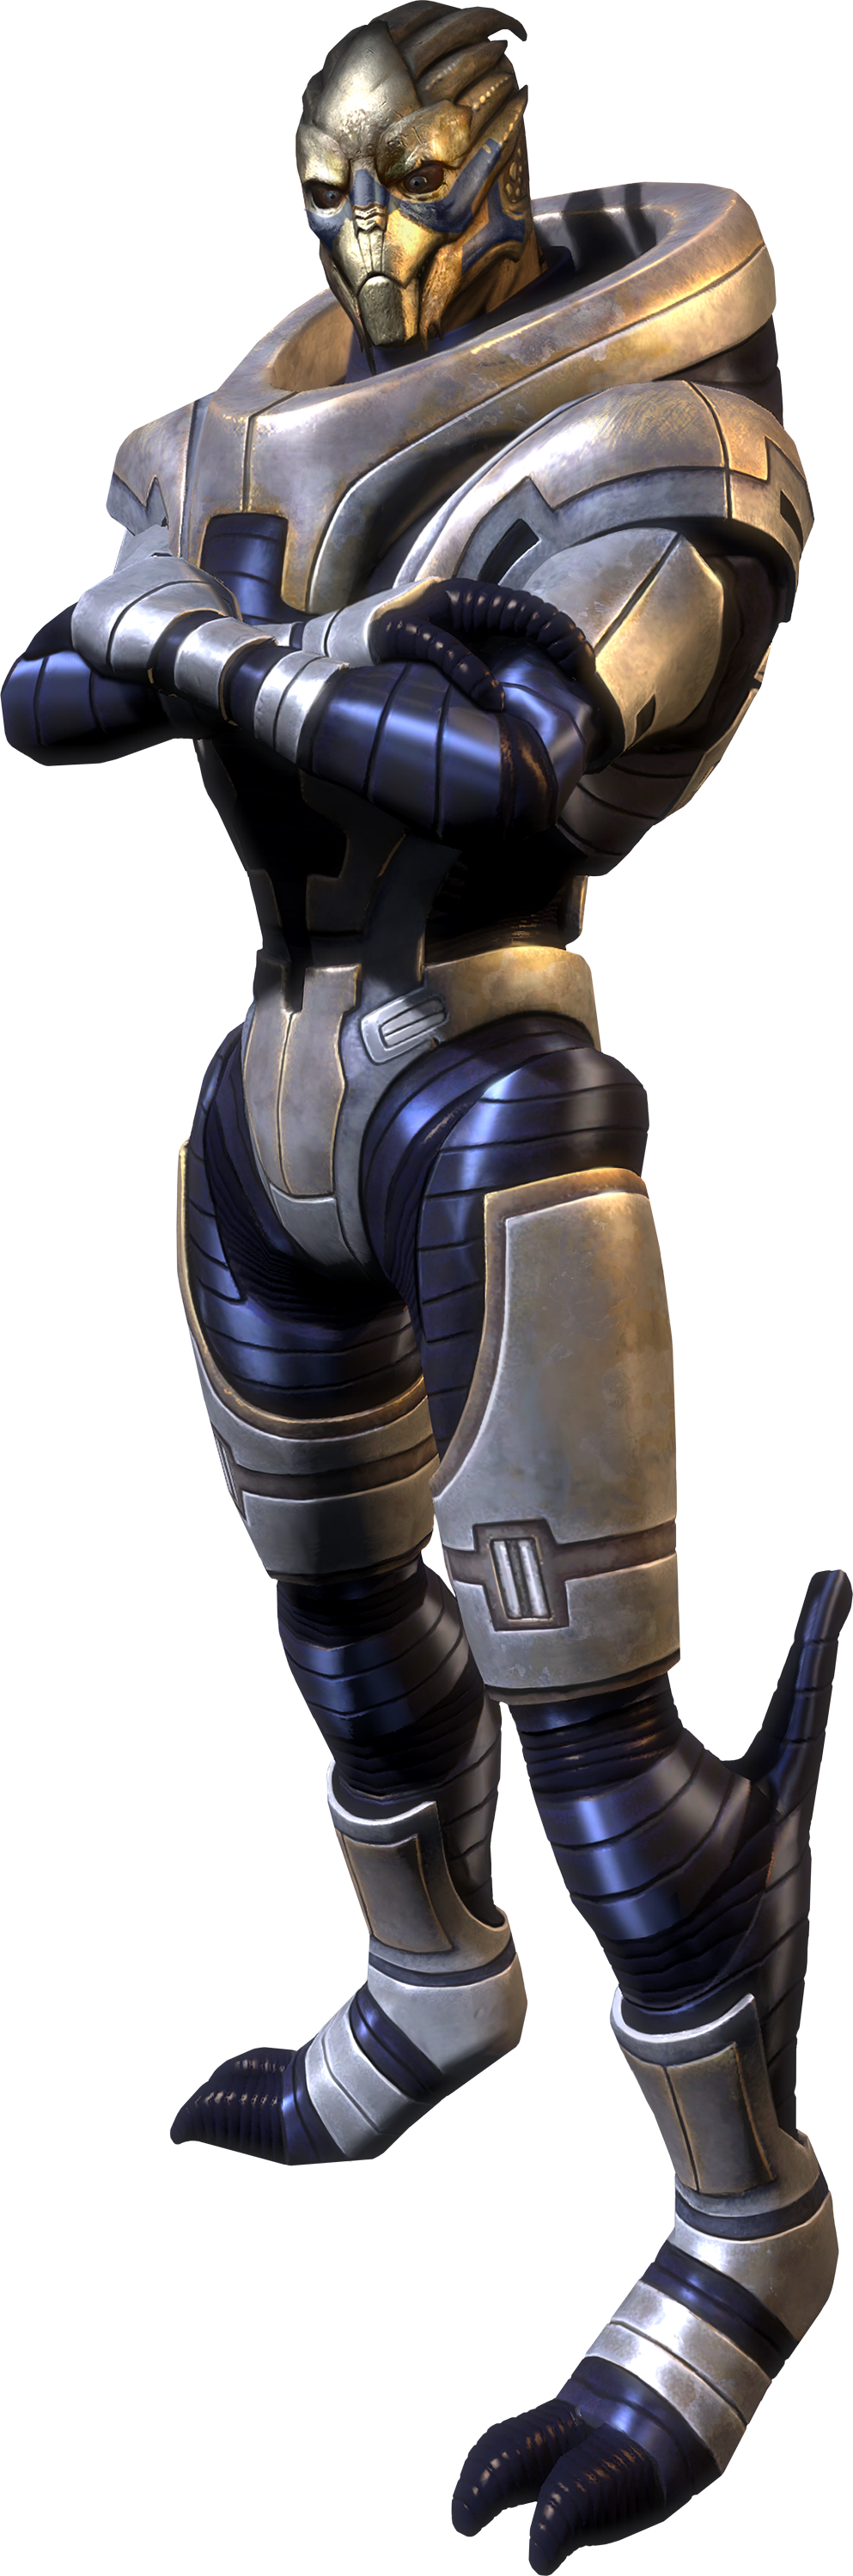 Mass Effect PNG-PlusPNG.com-993 - Mass Effect PNG